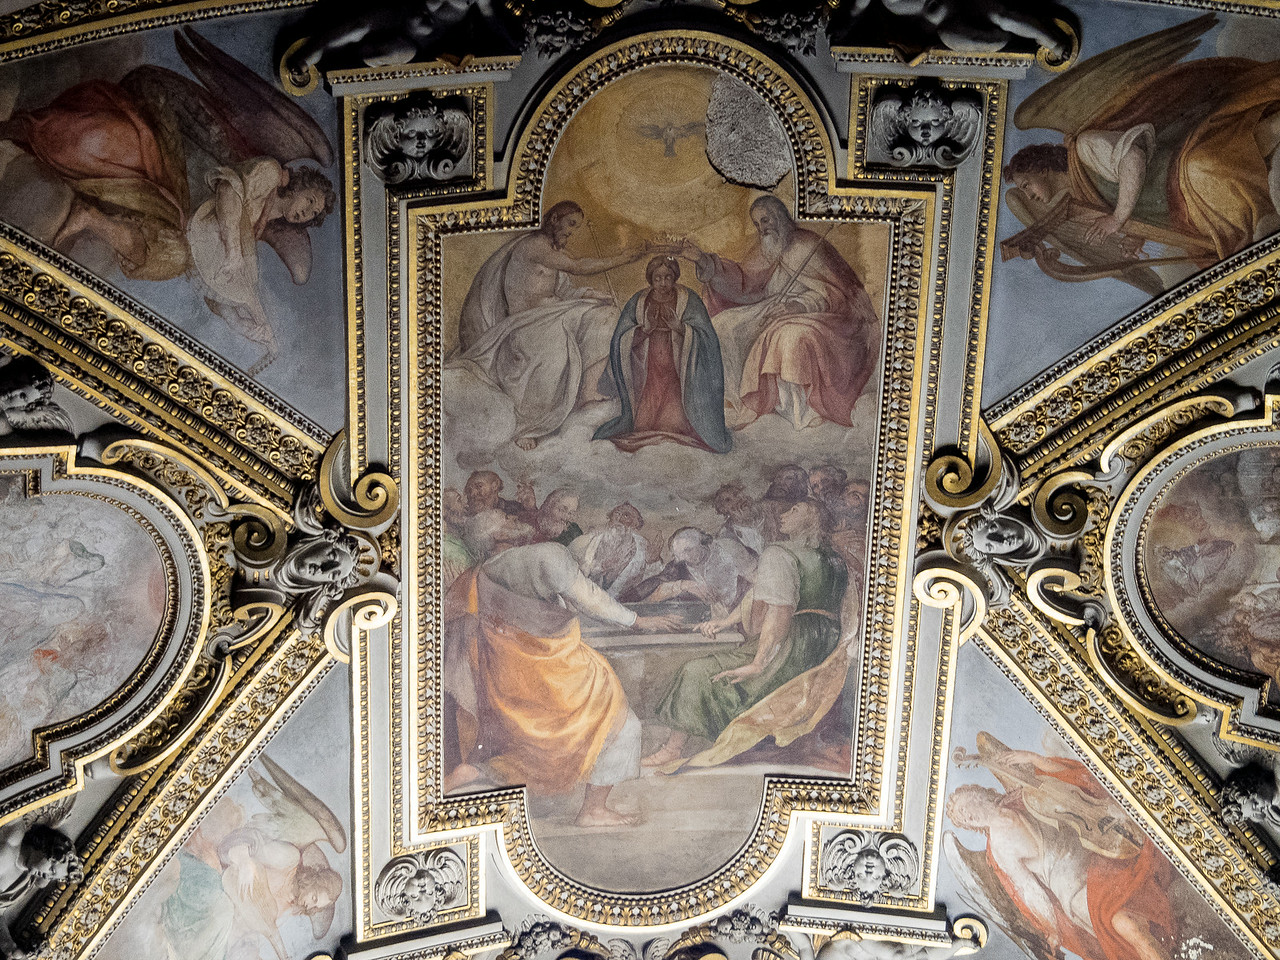 Santa Maria Sopre Minerva built on the remains of a Temple of Minerva  the 1280   The Virgin Mary being crowned the Queen of Heaven by God, Christ and the Holy Spirit